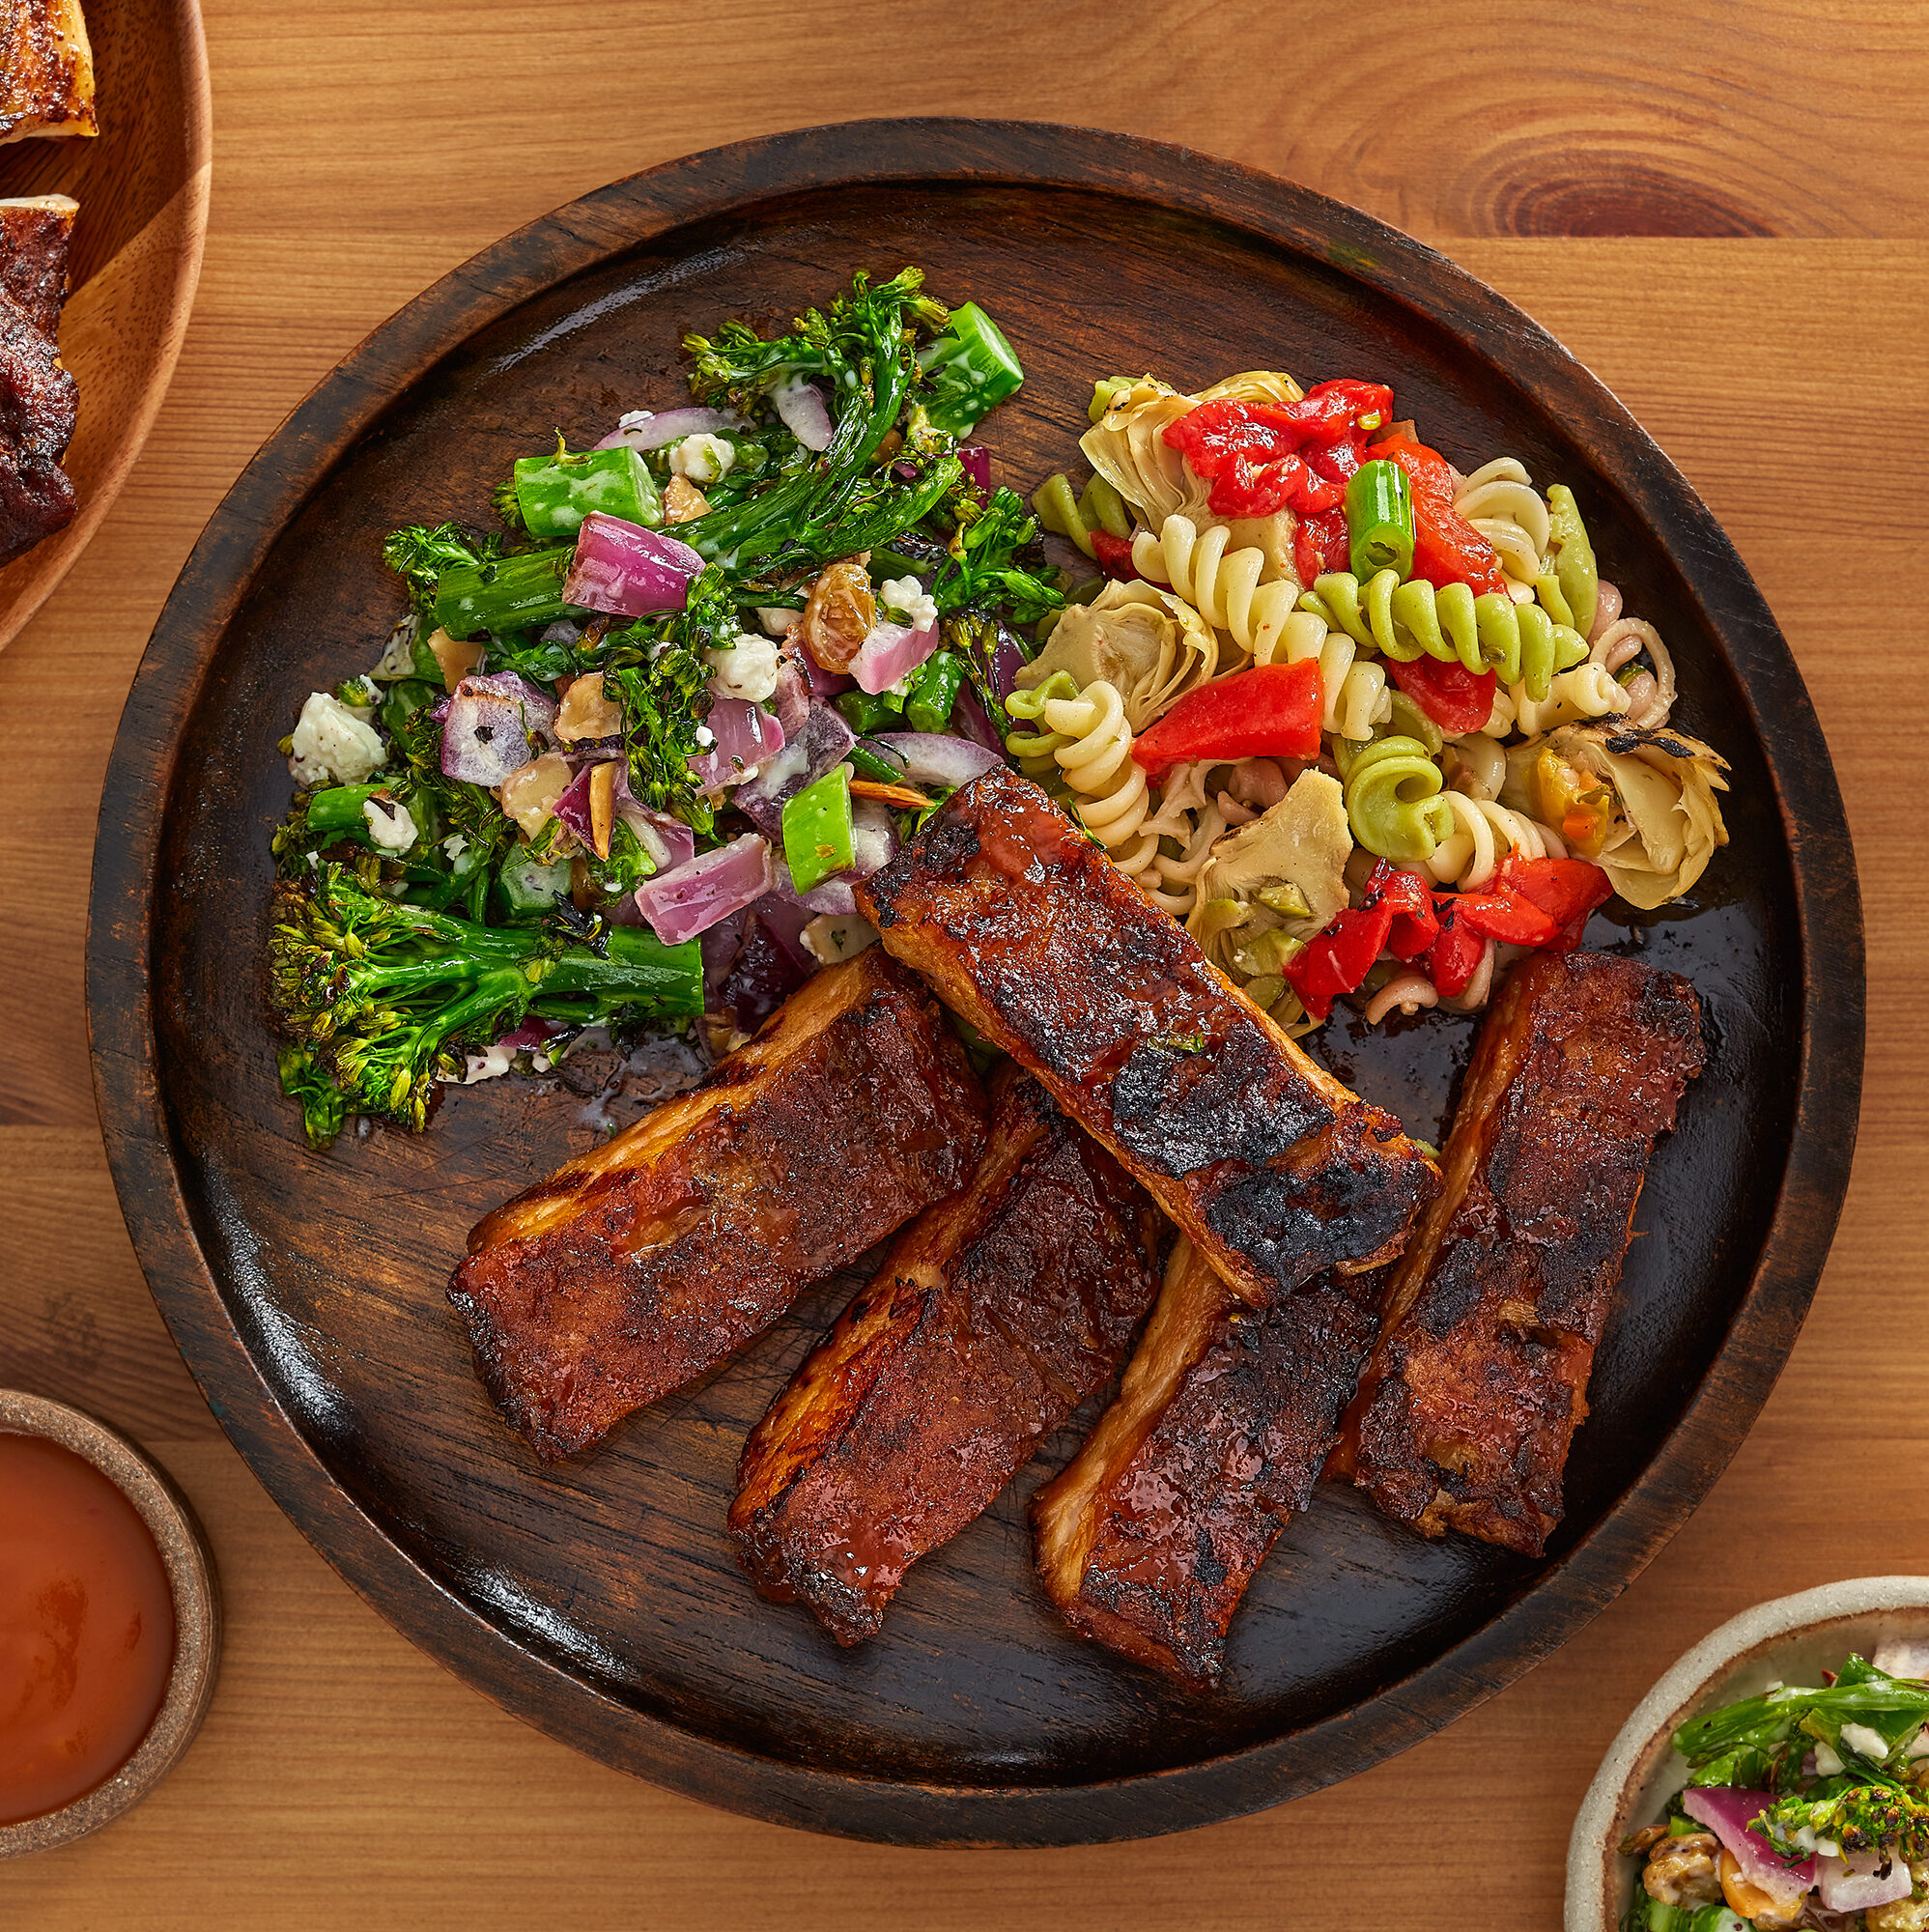 Barbecue Spare Ribs with Fusilli Pasta & Roasted Broccolini Crunch Salads for Four